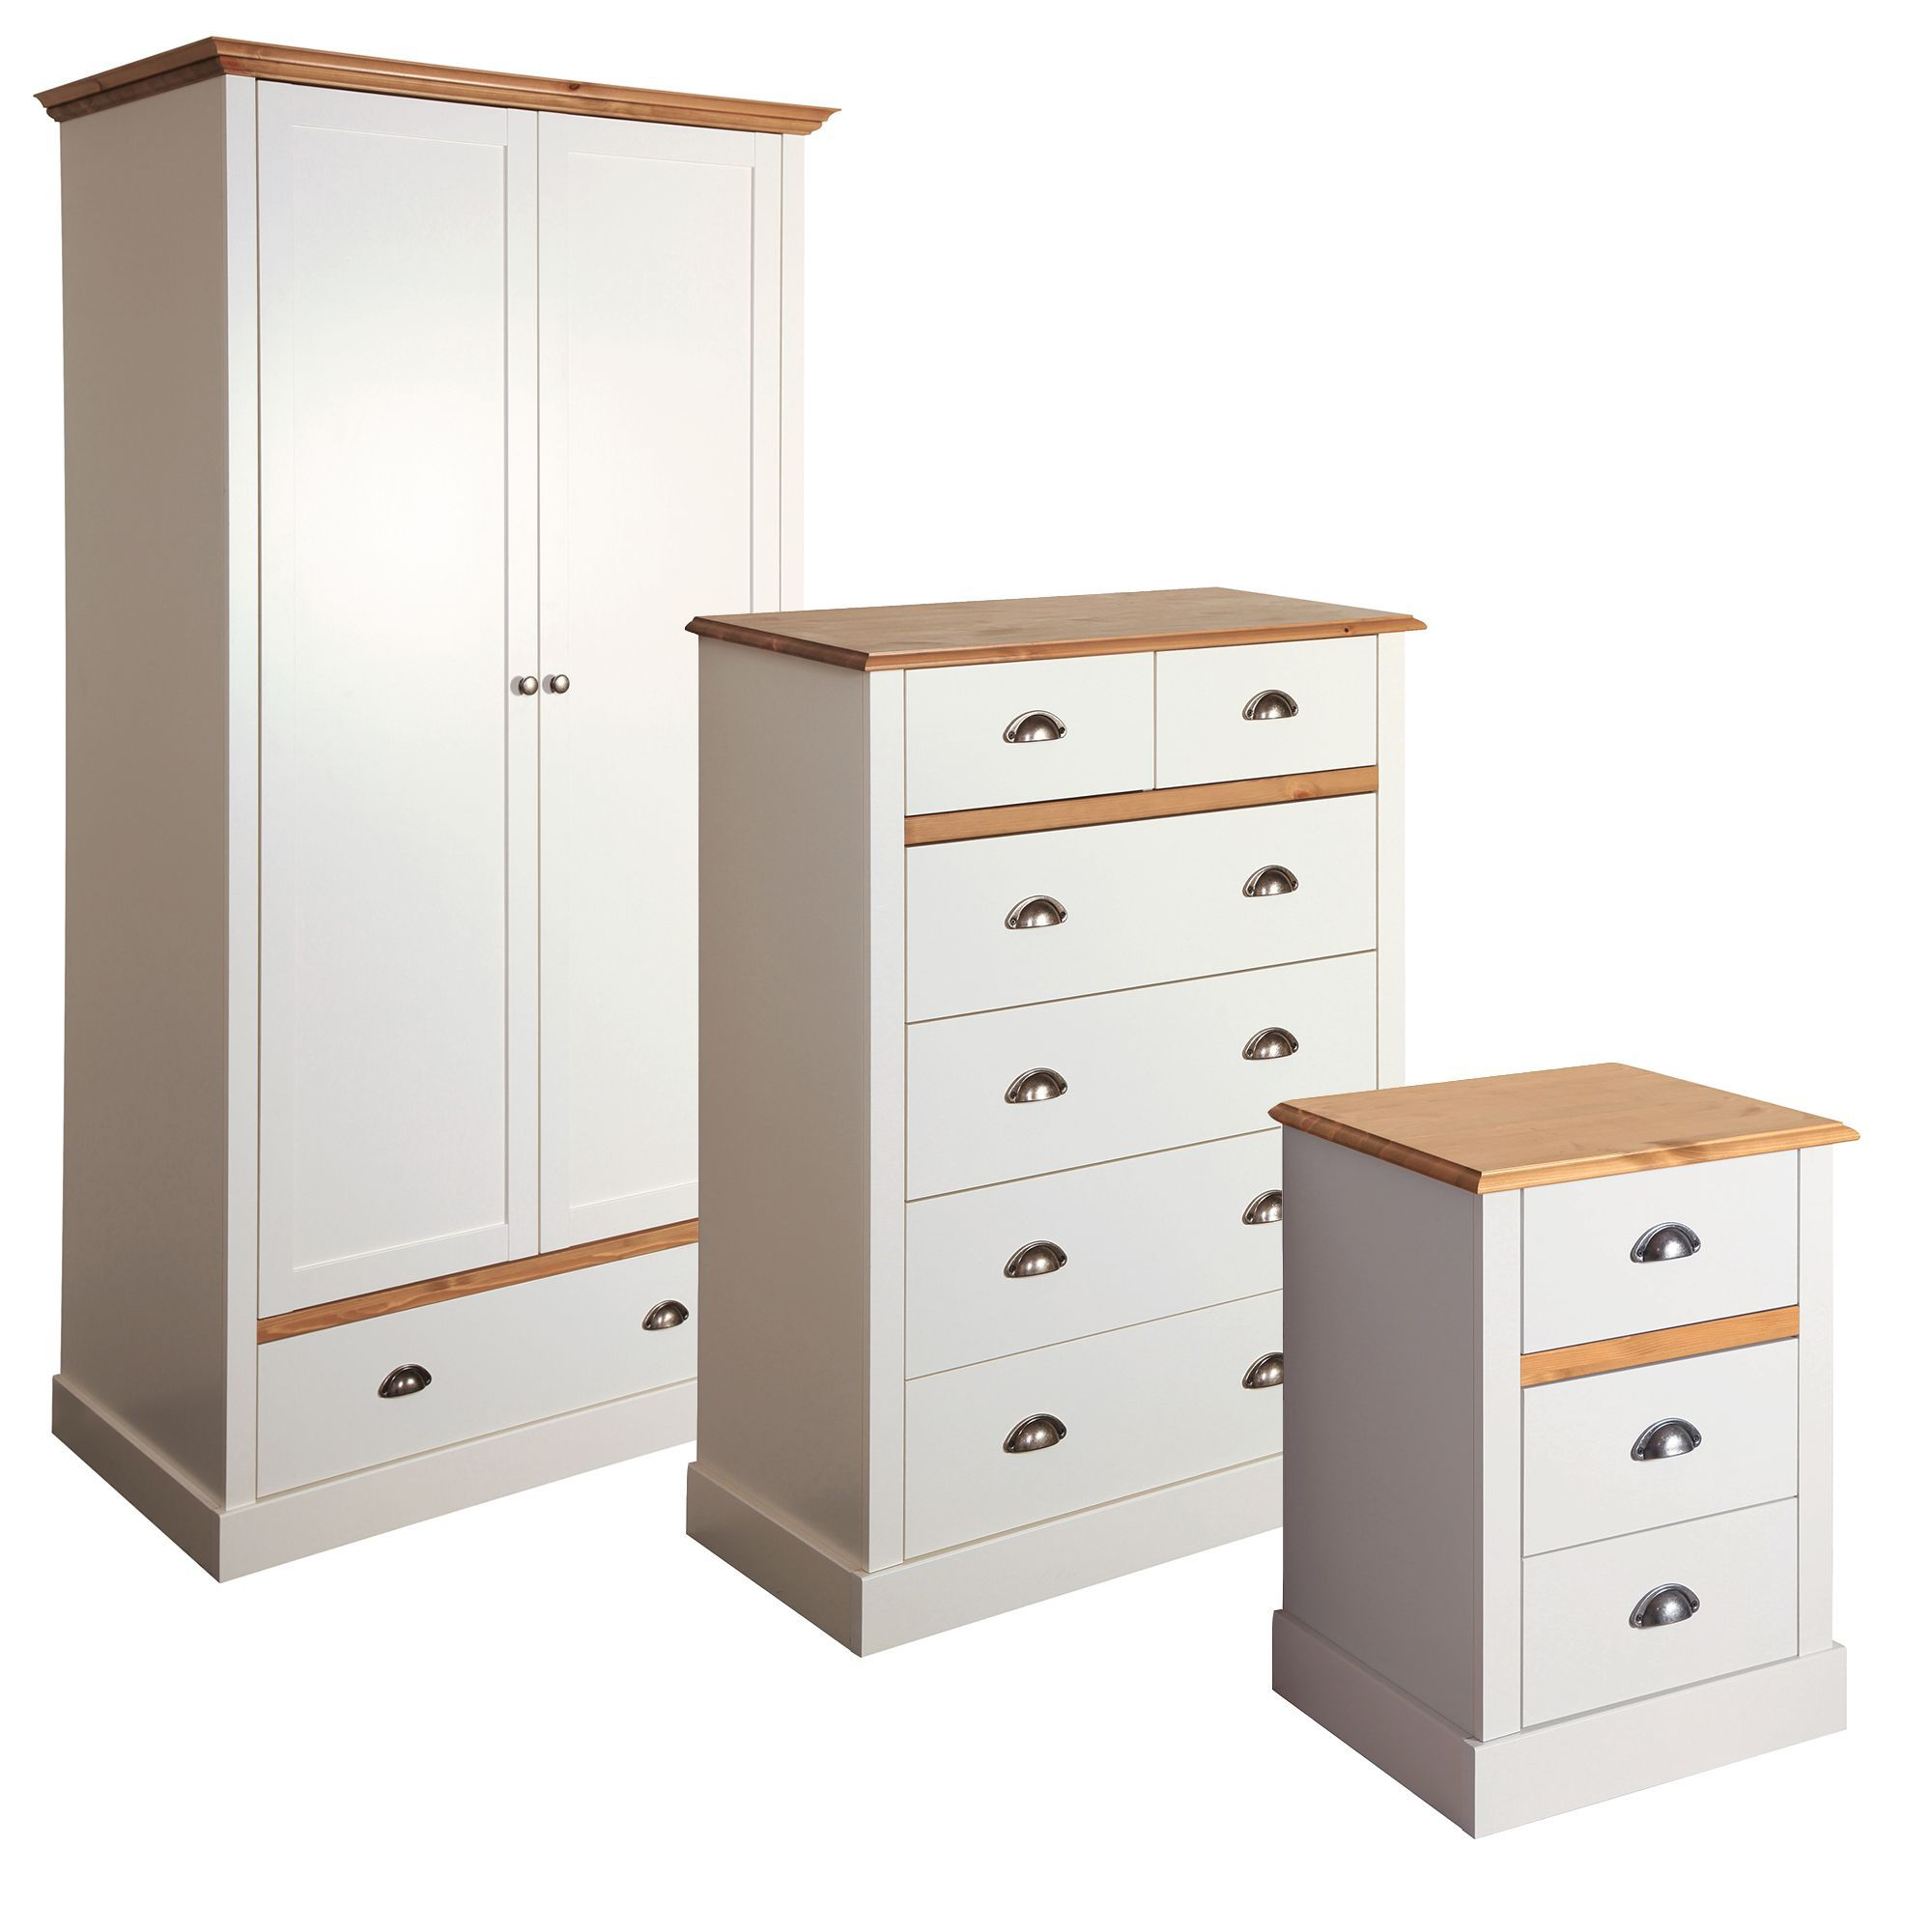 Cream And Pine Bedroom Furniture  Cream Pine Bedroom Furniture Hemsworth  Effect Piece. Cream And Pine Bedroom Furniture  Cream Pine Bedroom Furniture